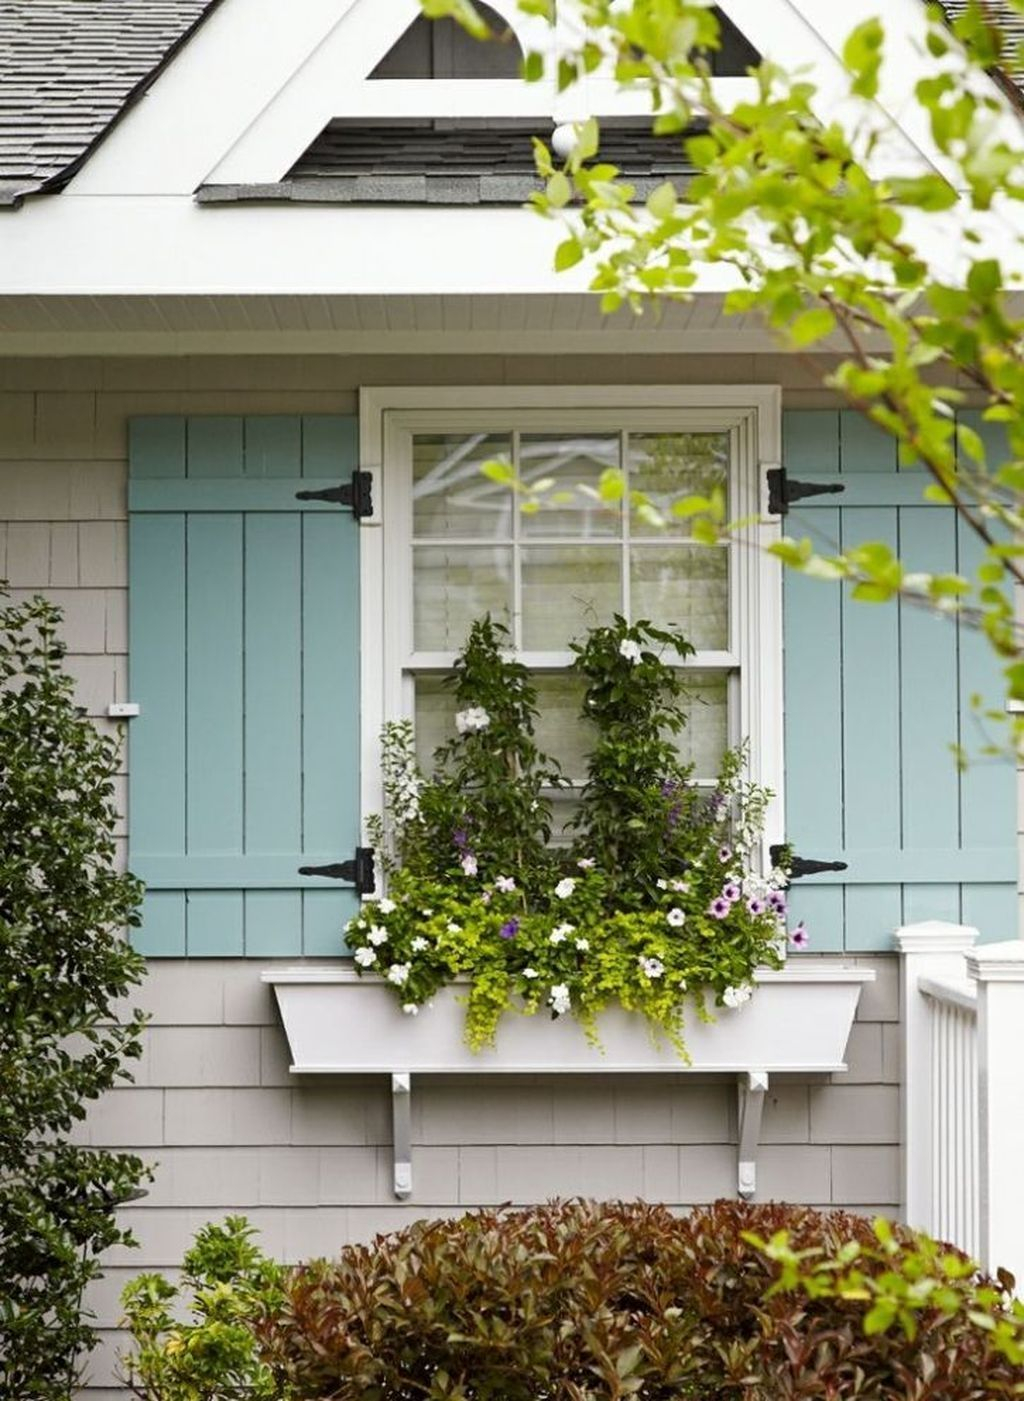 Fabulous Exterior Decoration Ideas With Flower In Window 08